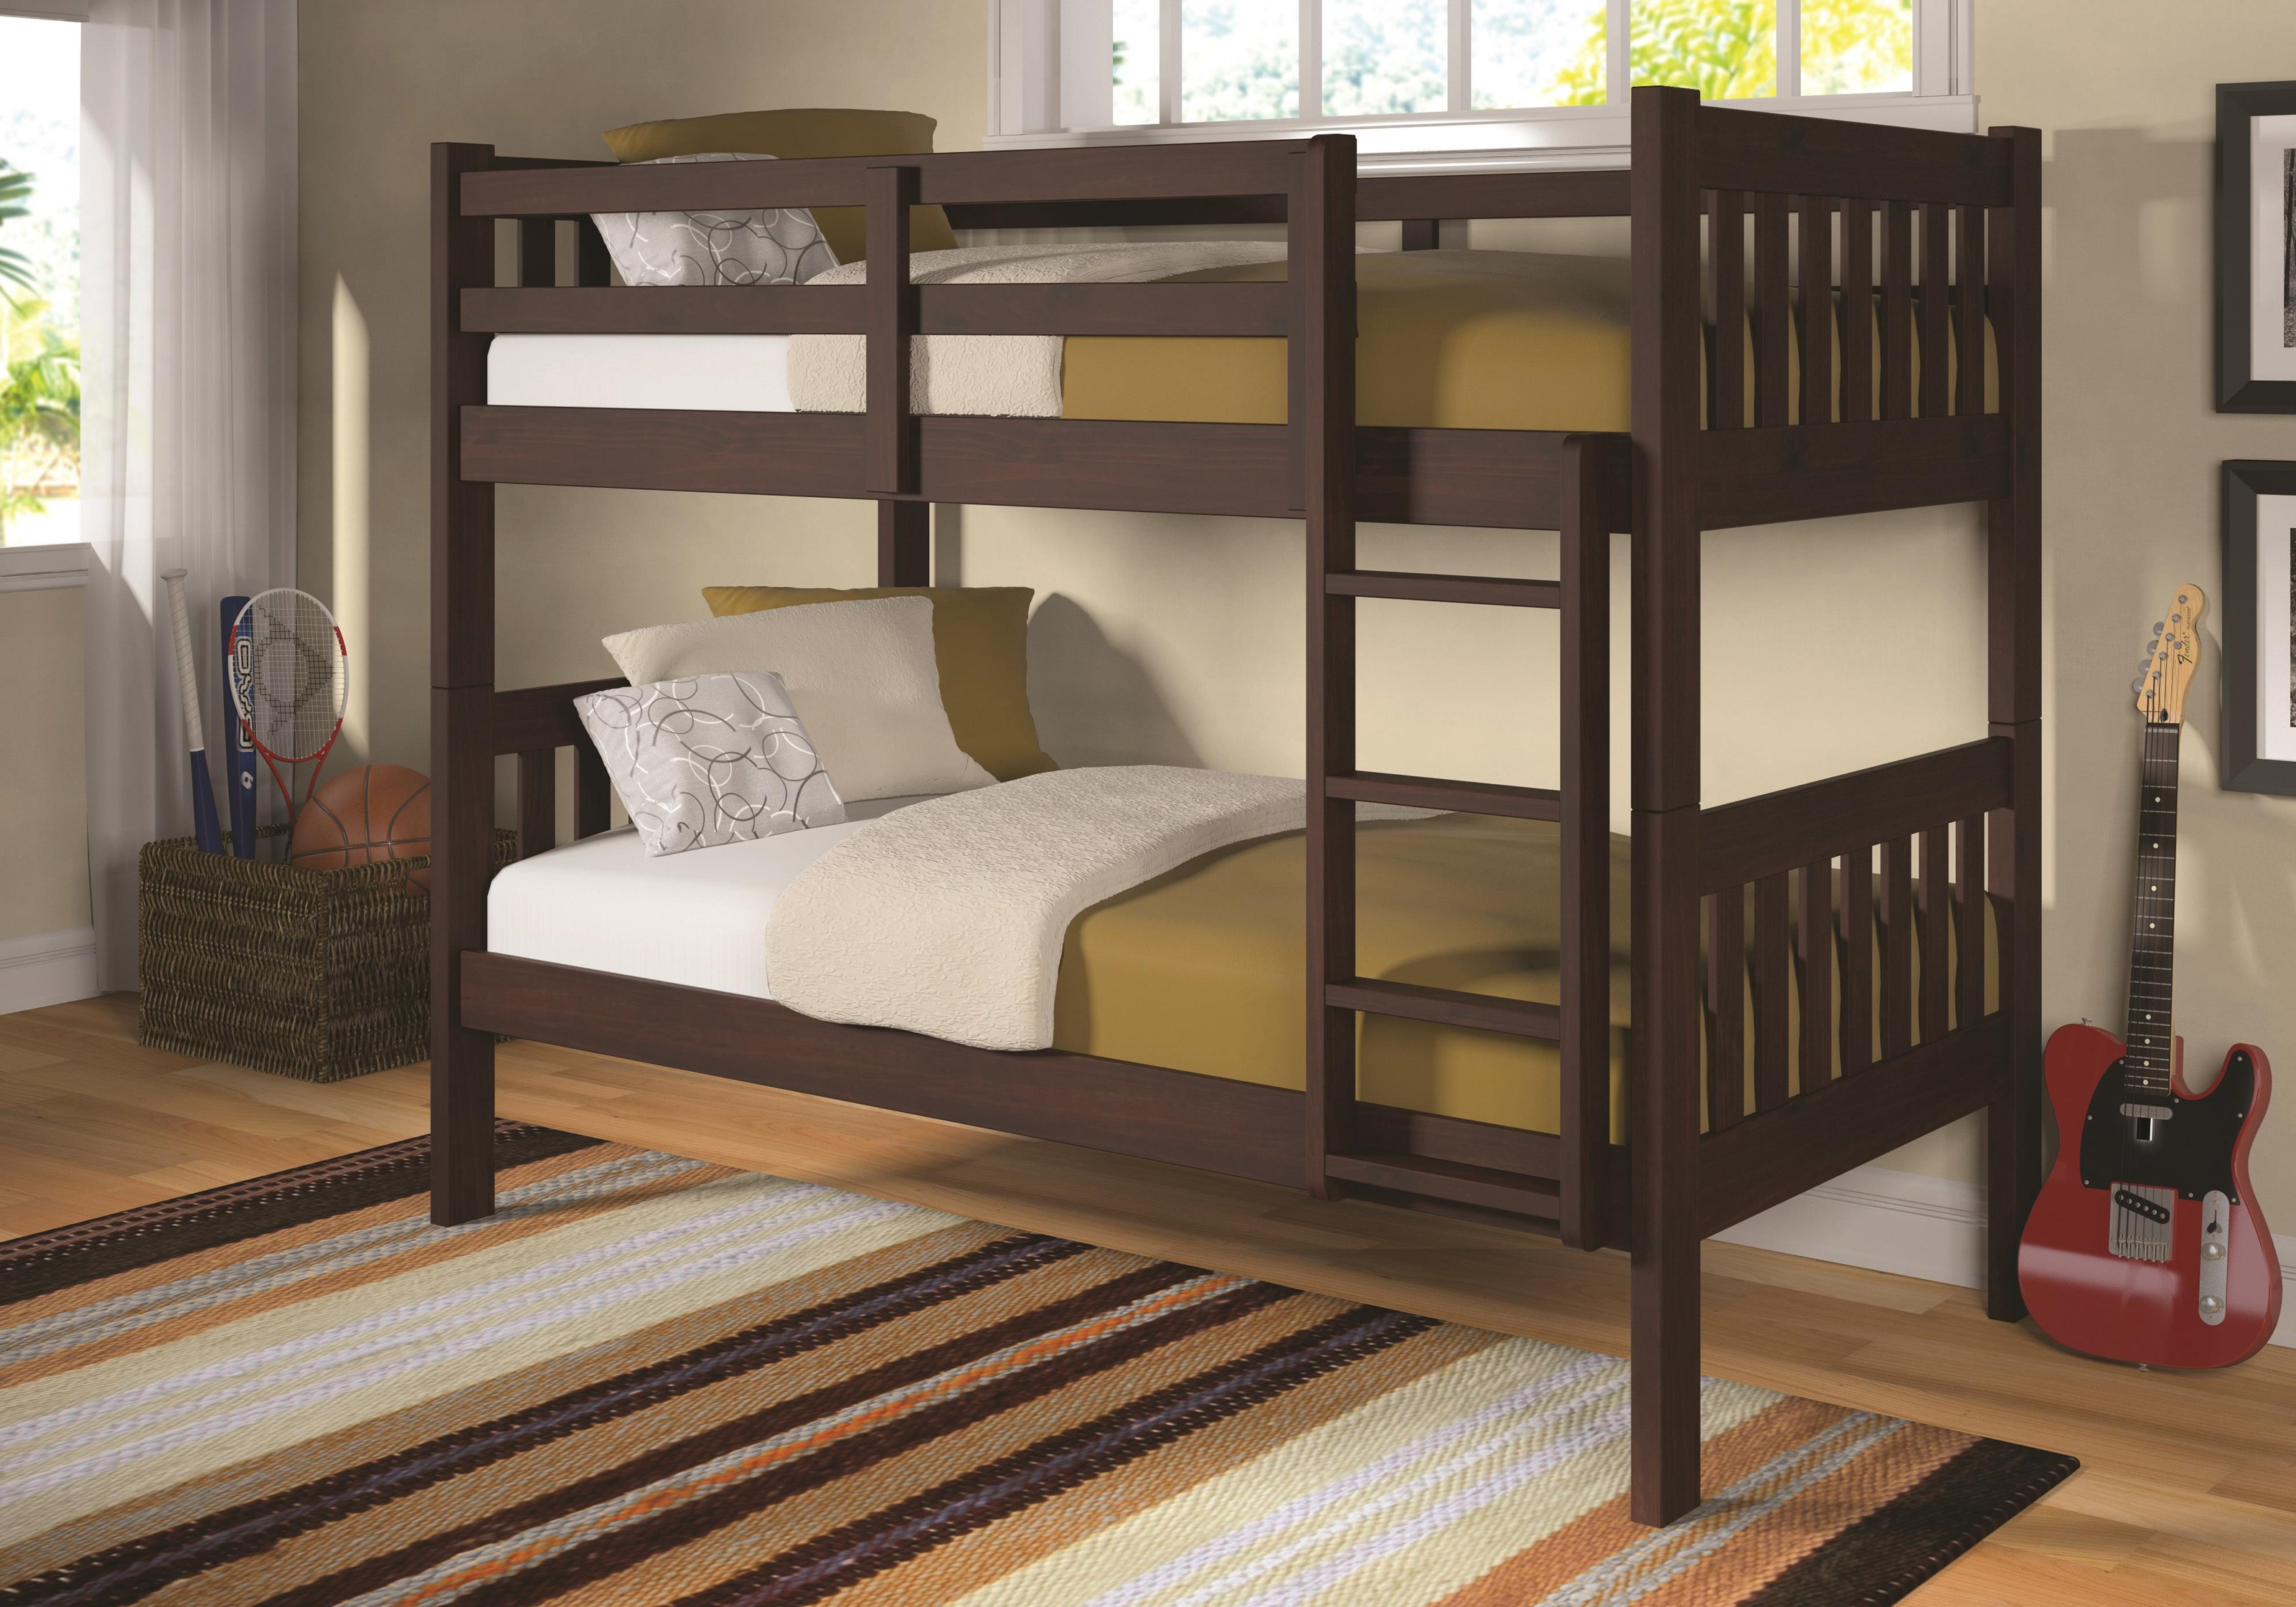 Mason - Mason Twin Bunk Bed by Donco Trading Co at Morris Home